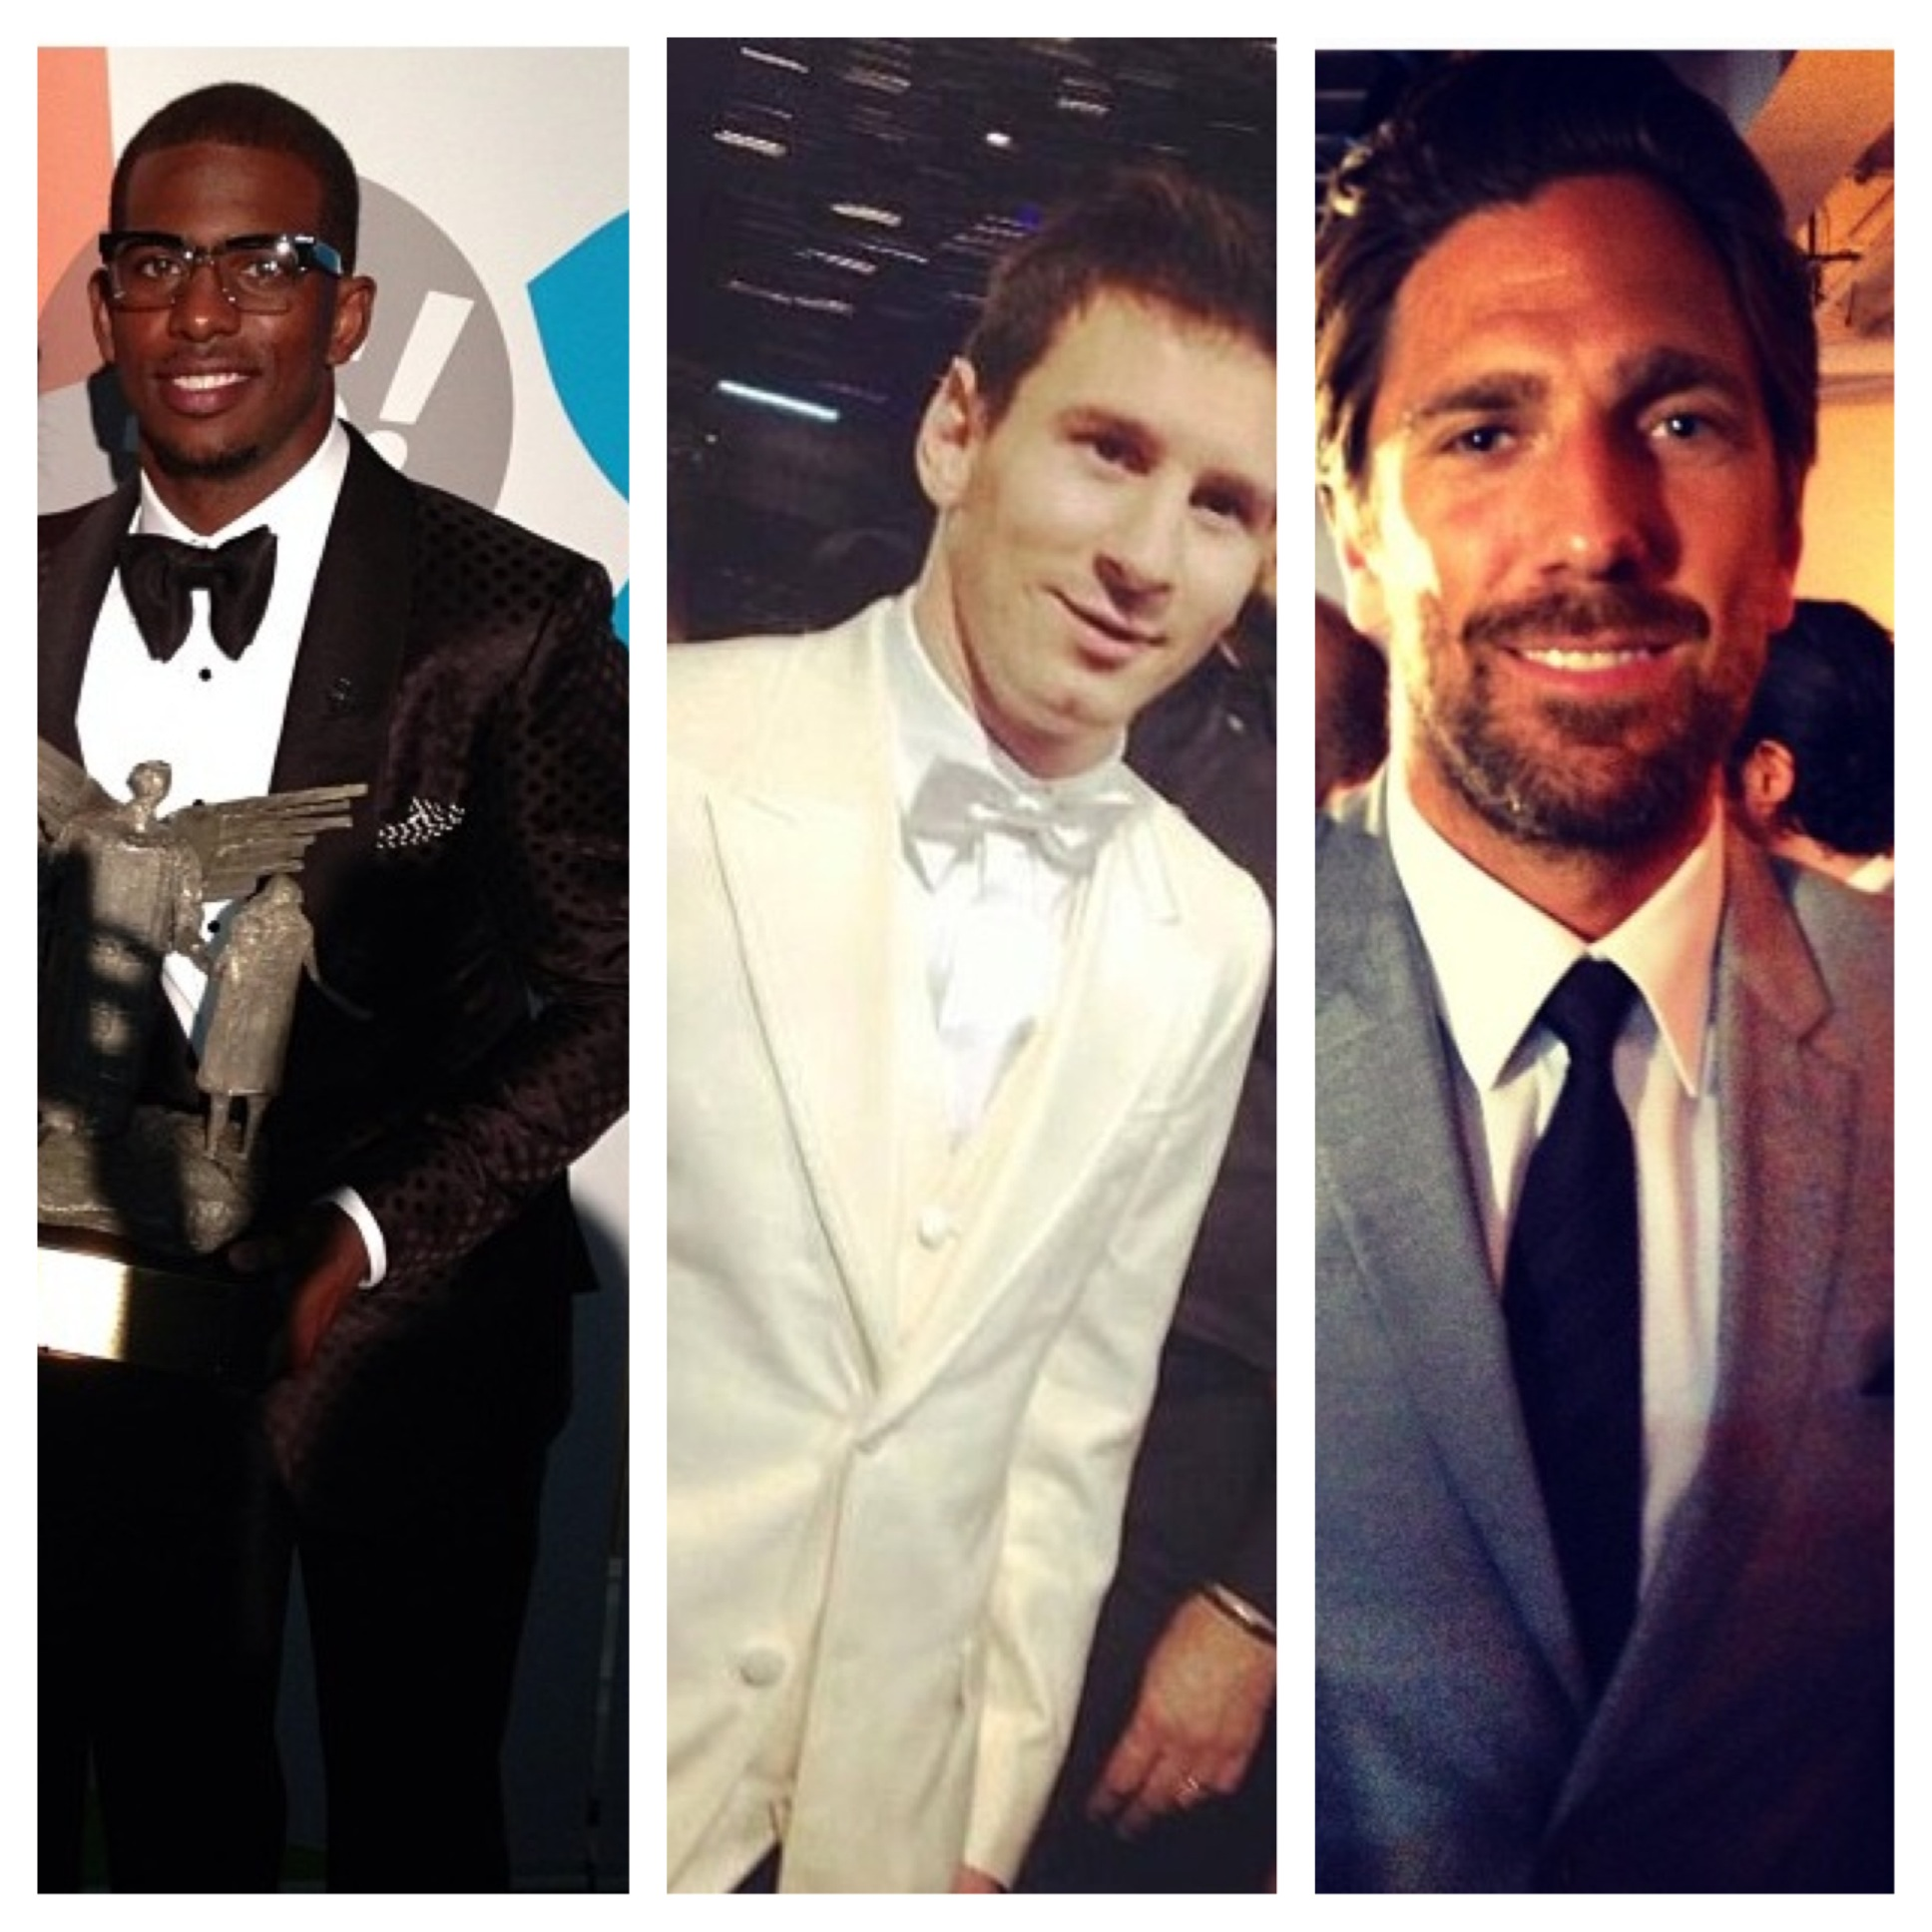 chris-paul-lionel-messi-henrik-lundqvist-fashion-instagram